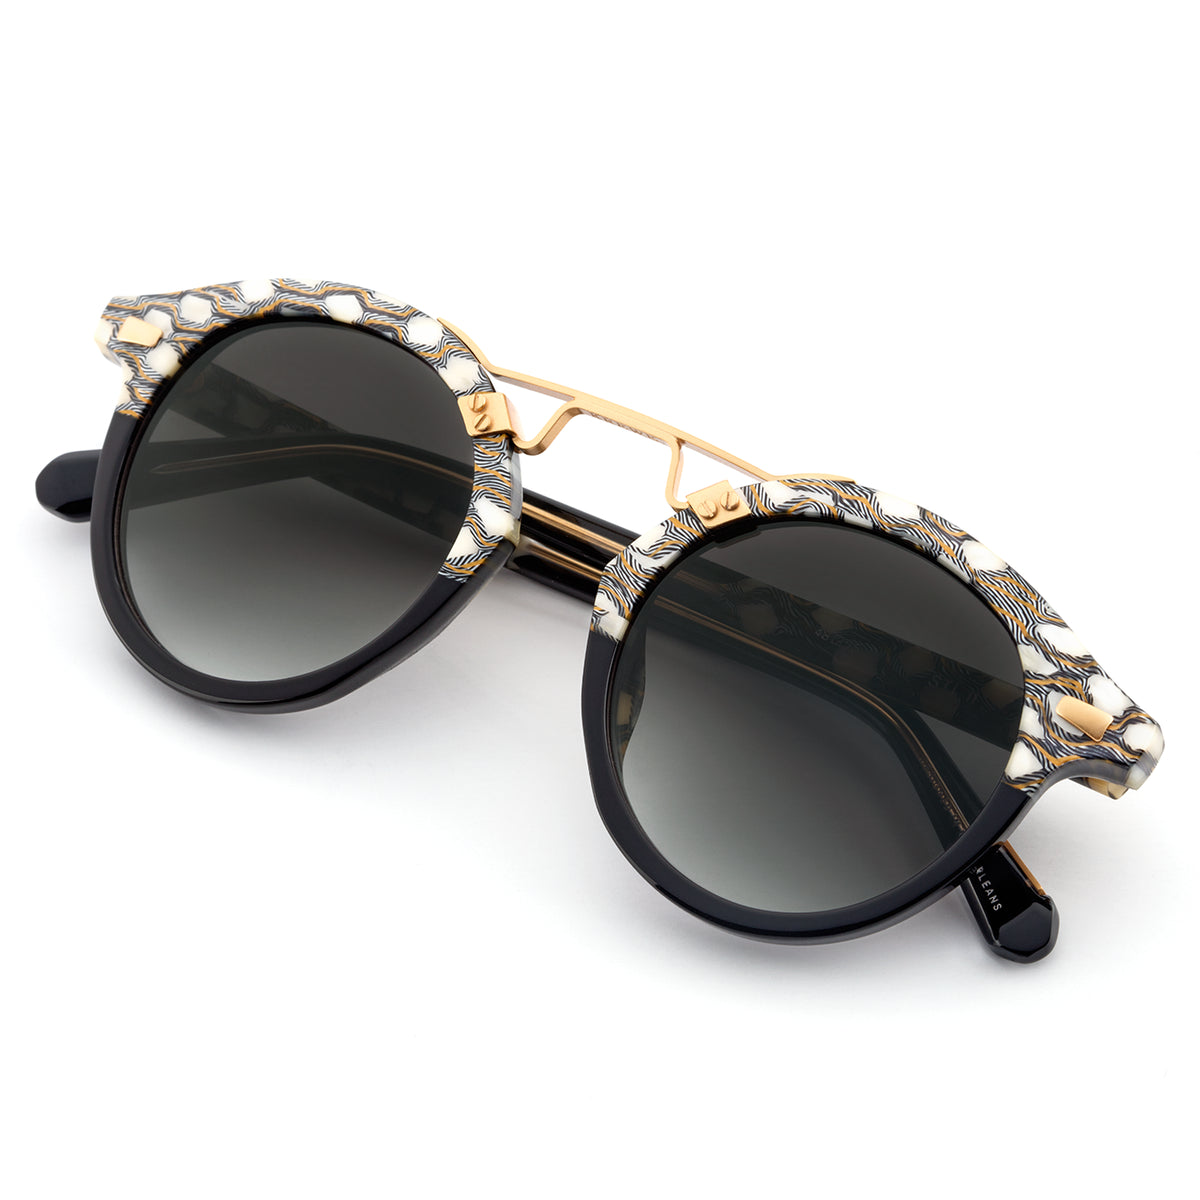 STL II | Stella to Black 24K - round Sunglasses handcrafted from acetate featuring 24K gold hardware.